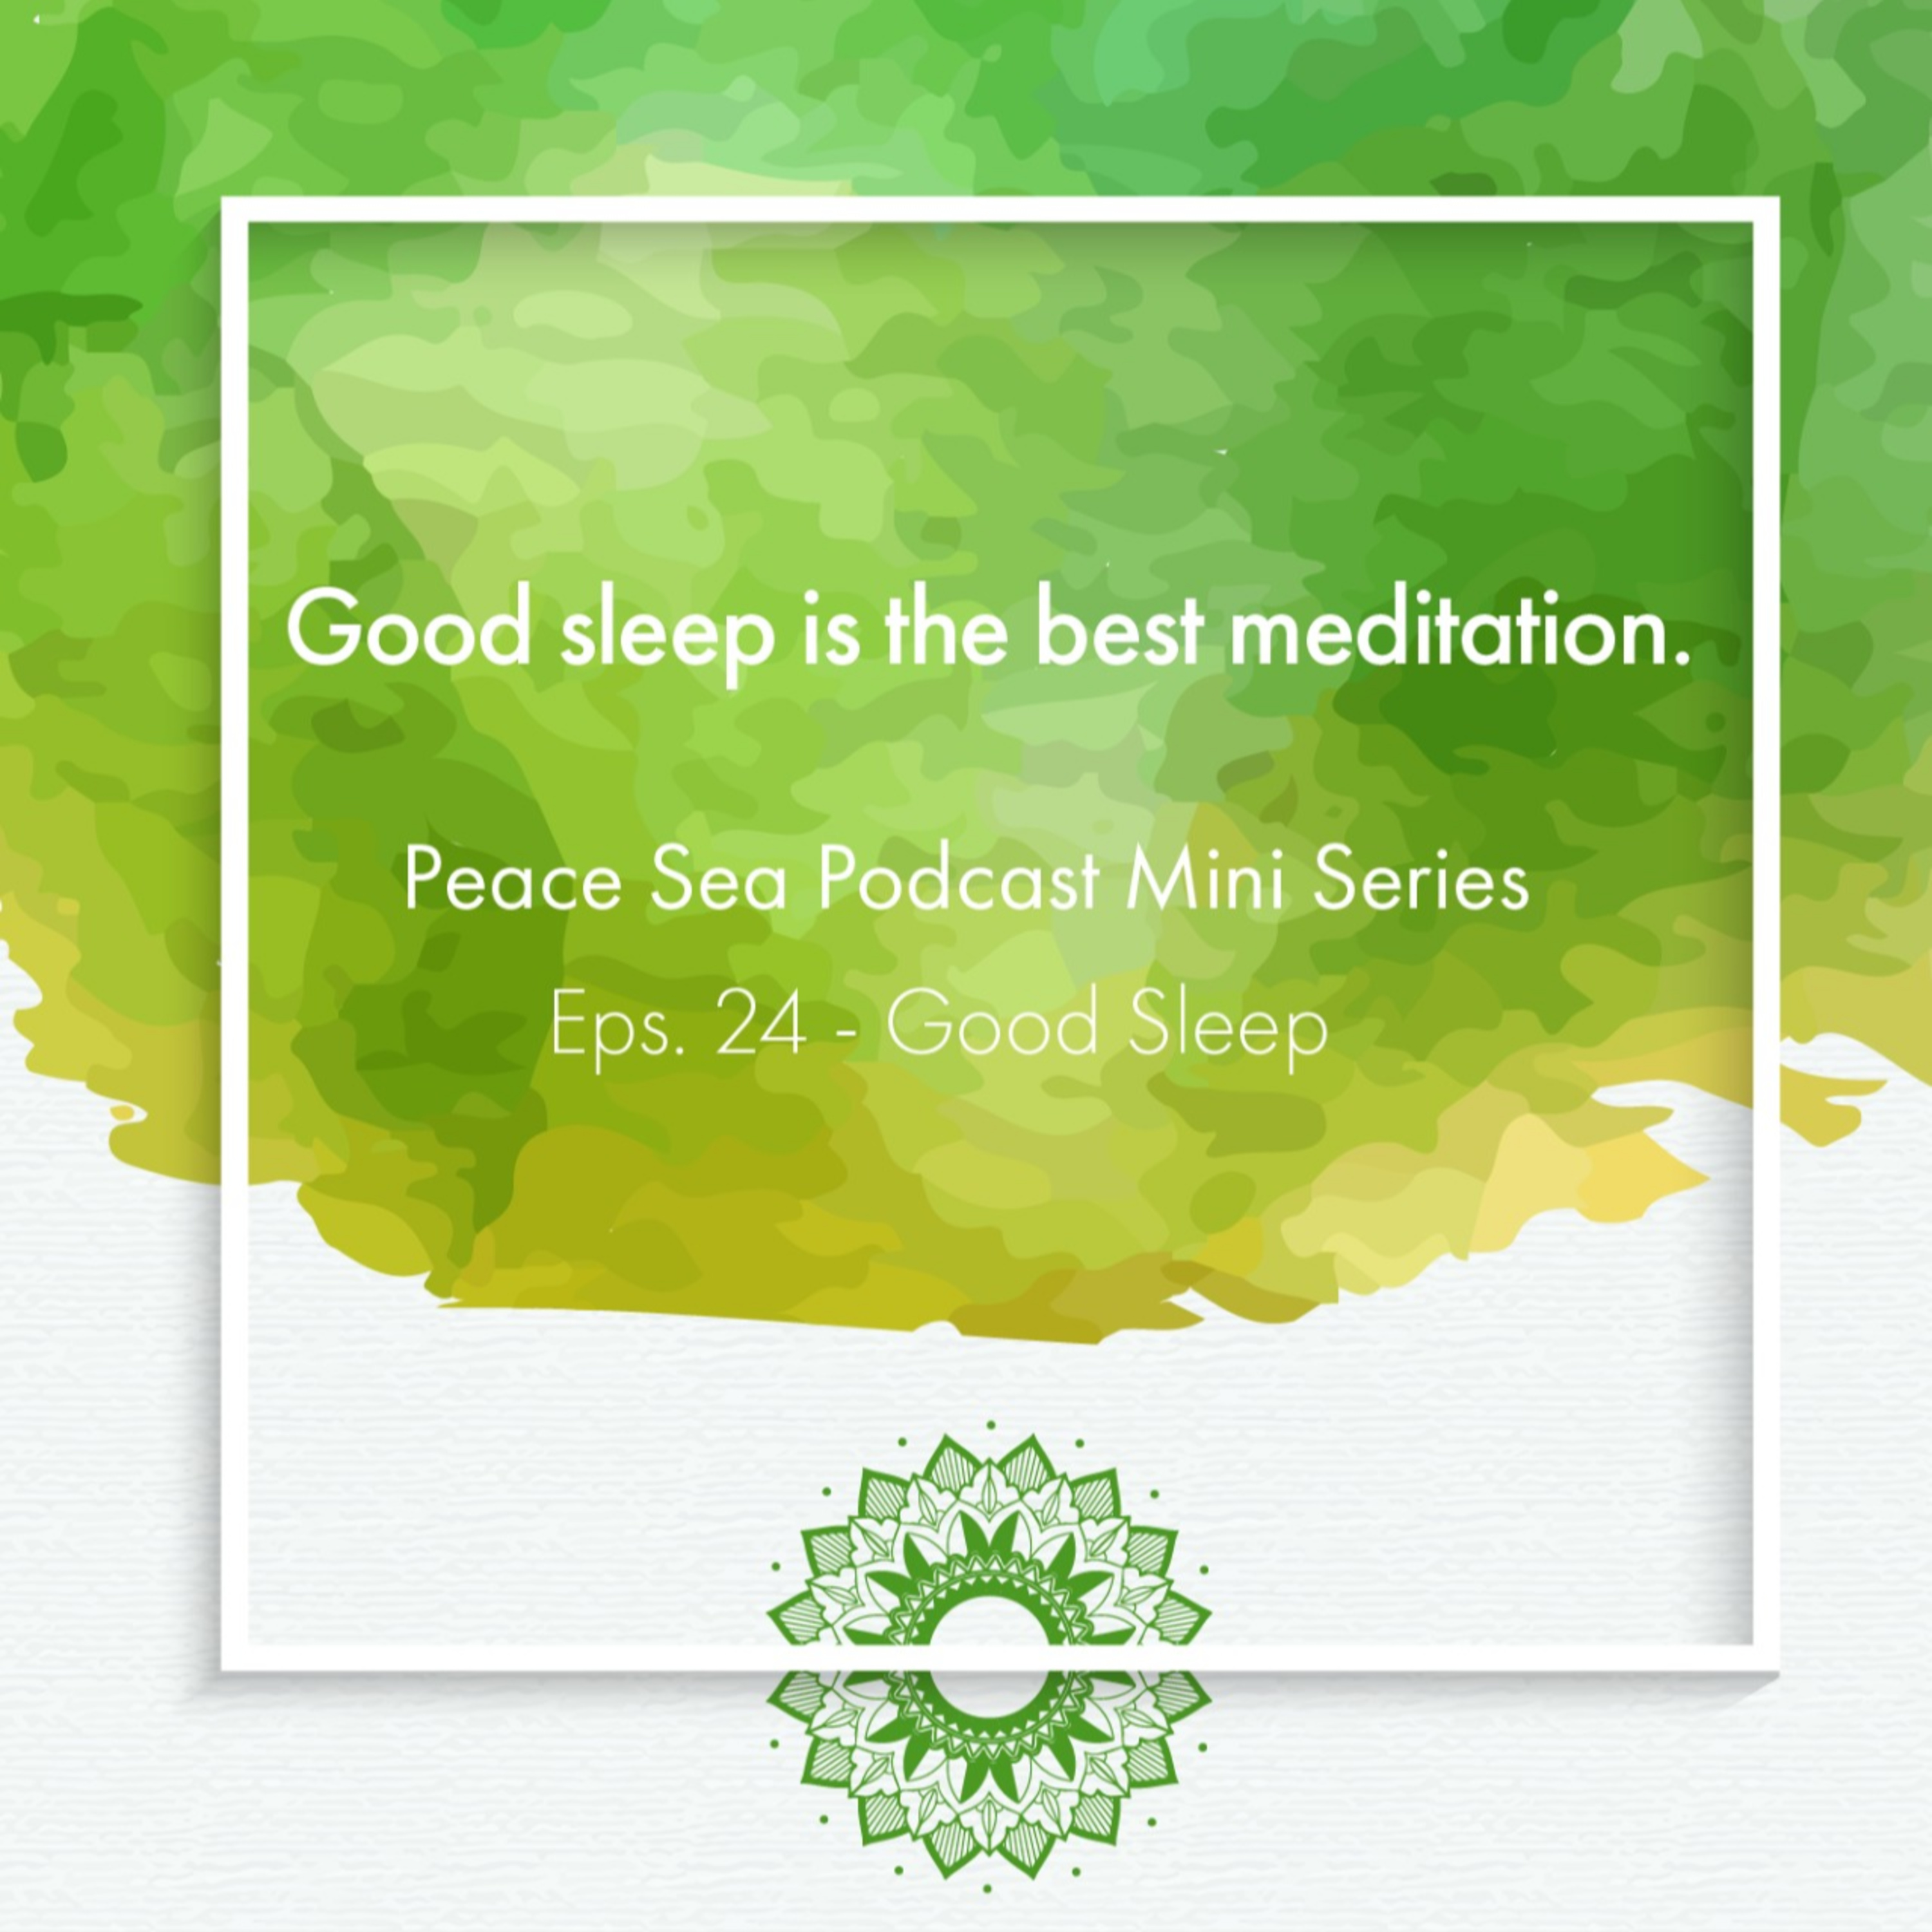 Ep. 24. Miniseries - Good Sleep